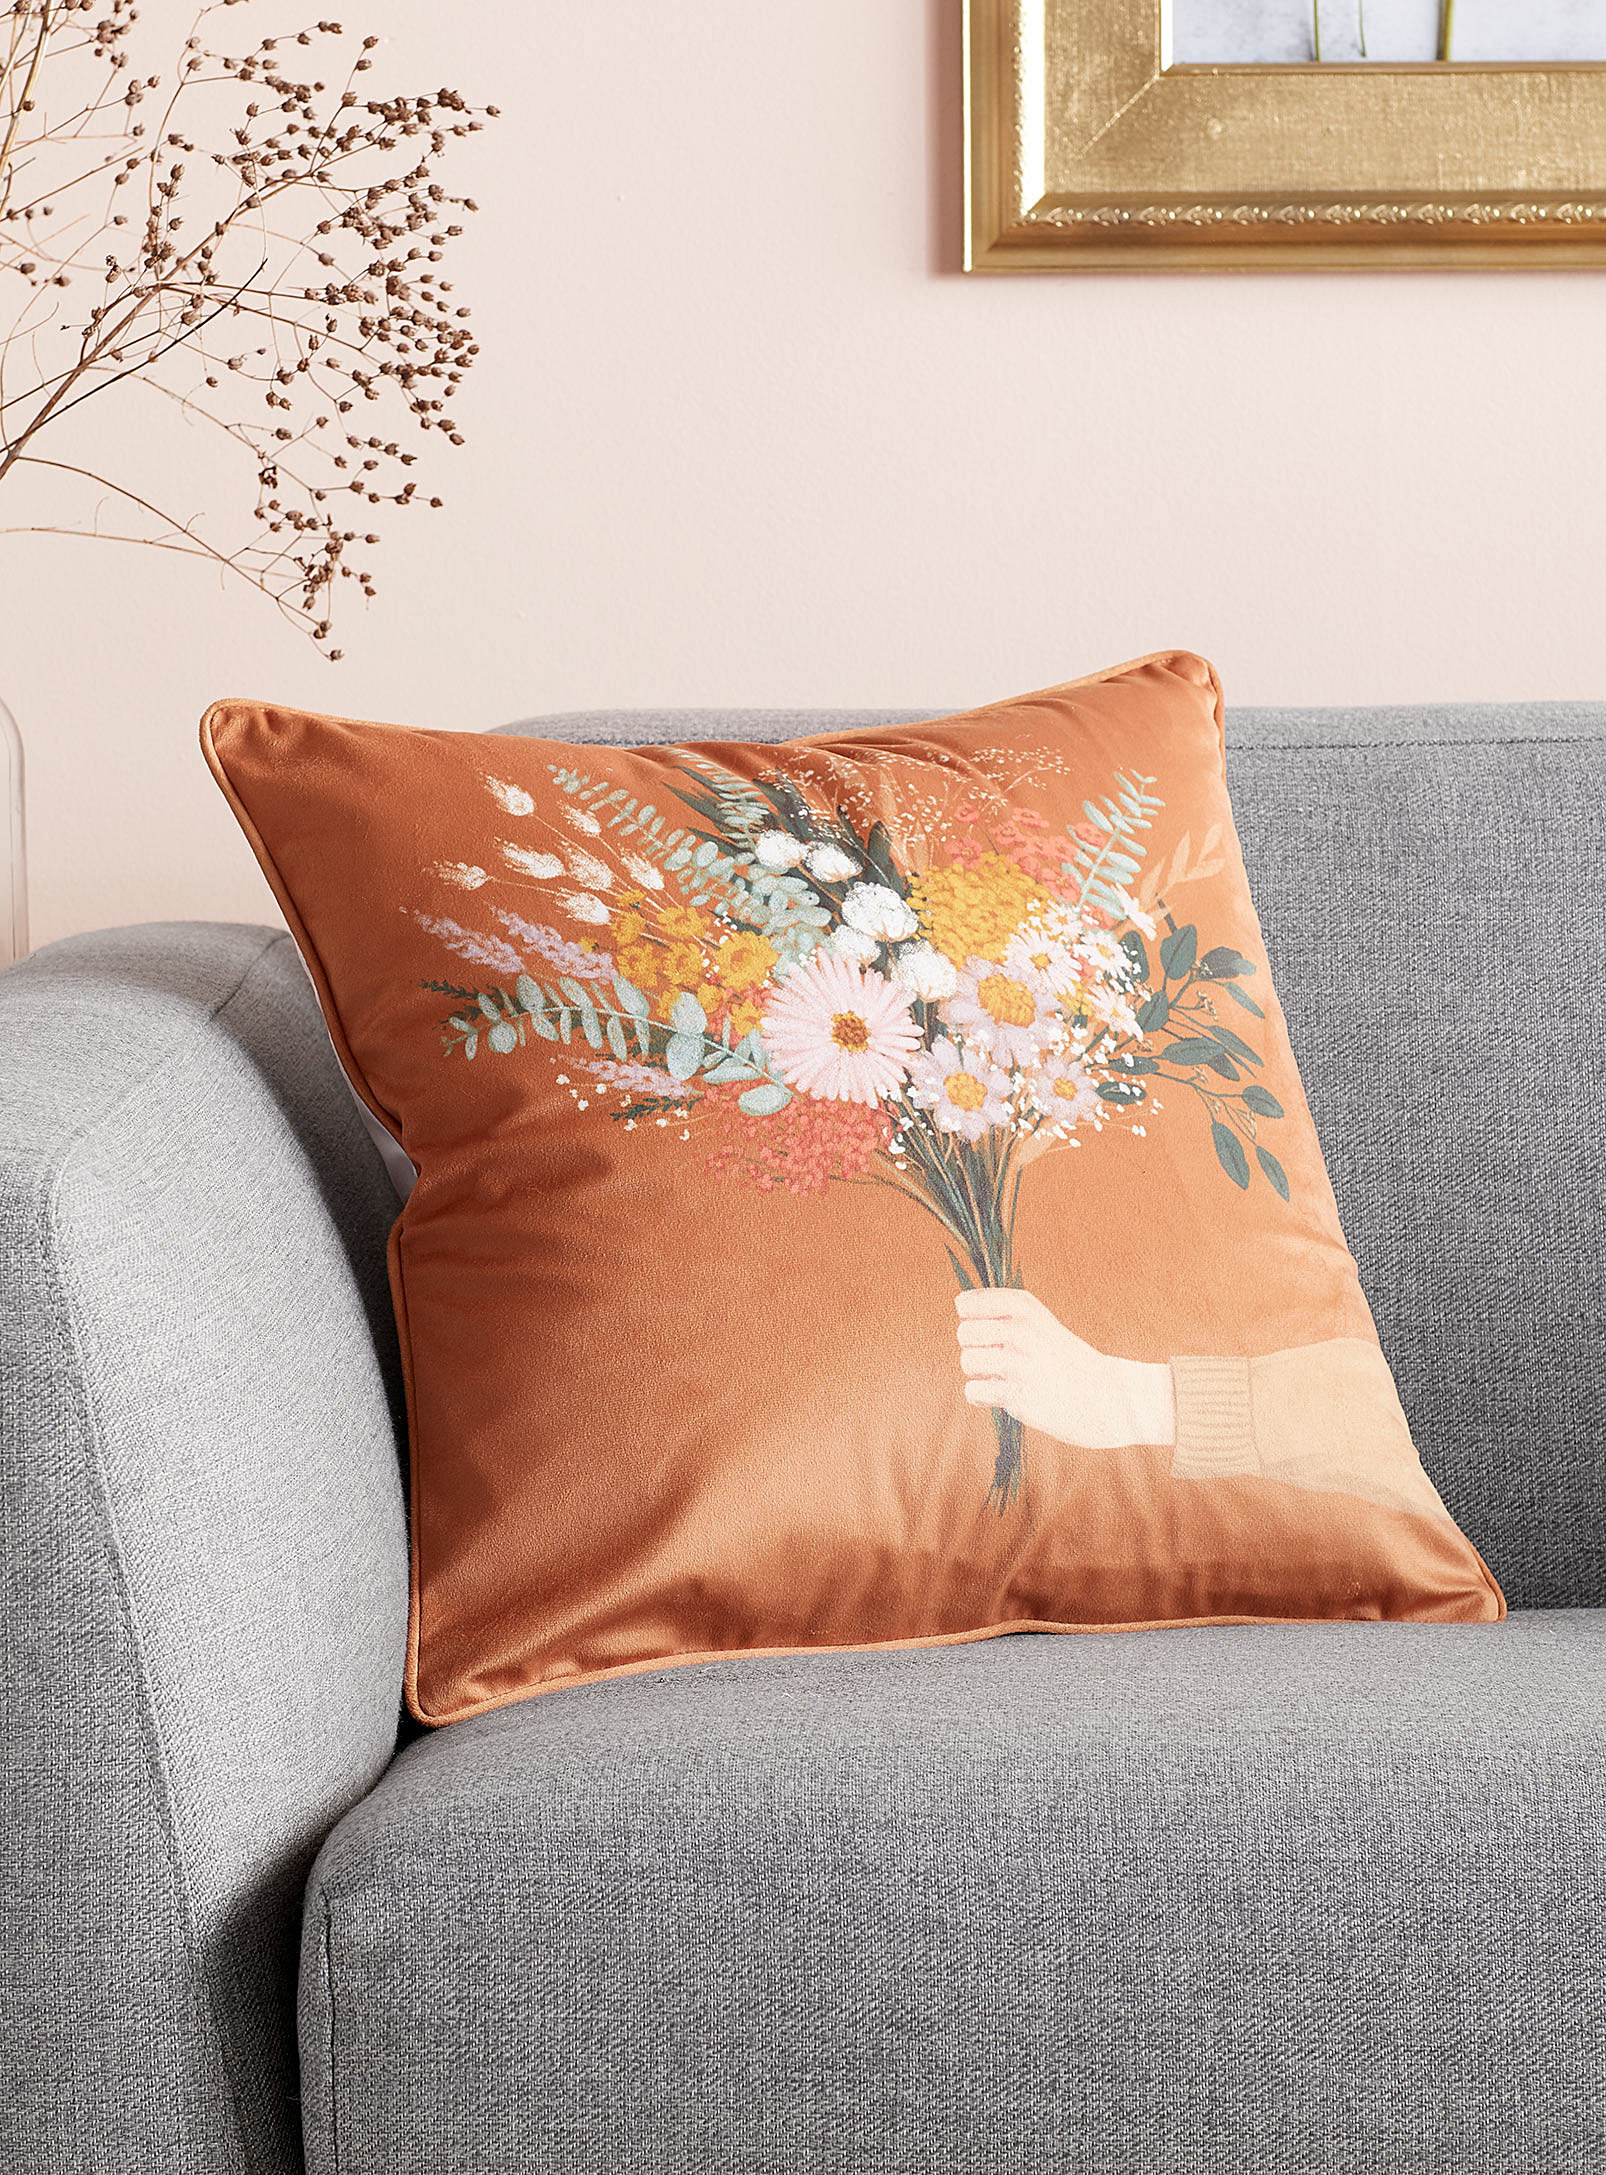 A cushion with a person holding a bouquet of flowers